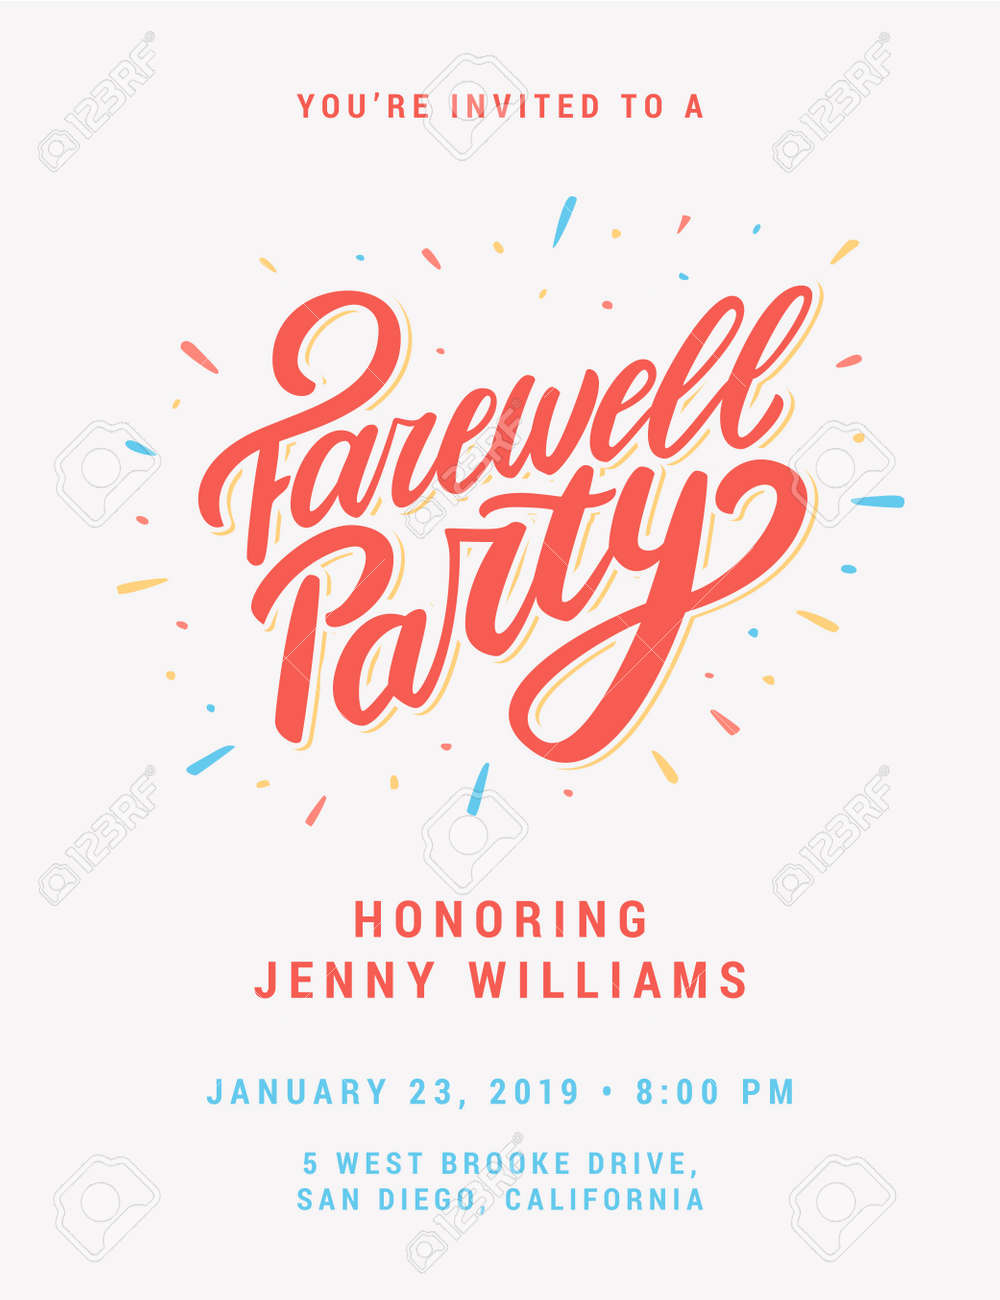 Farewell Party Invitation Royalty Free Cliparts Vectors And Stock